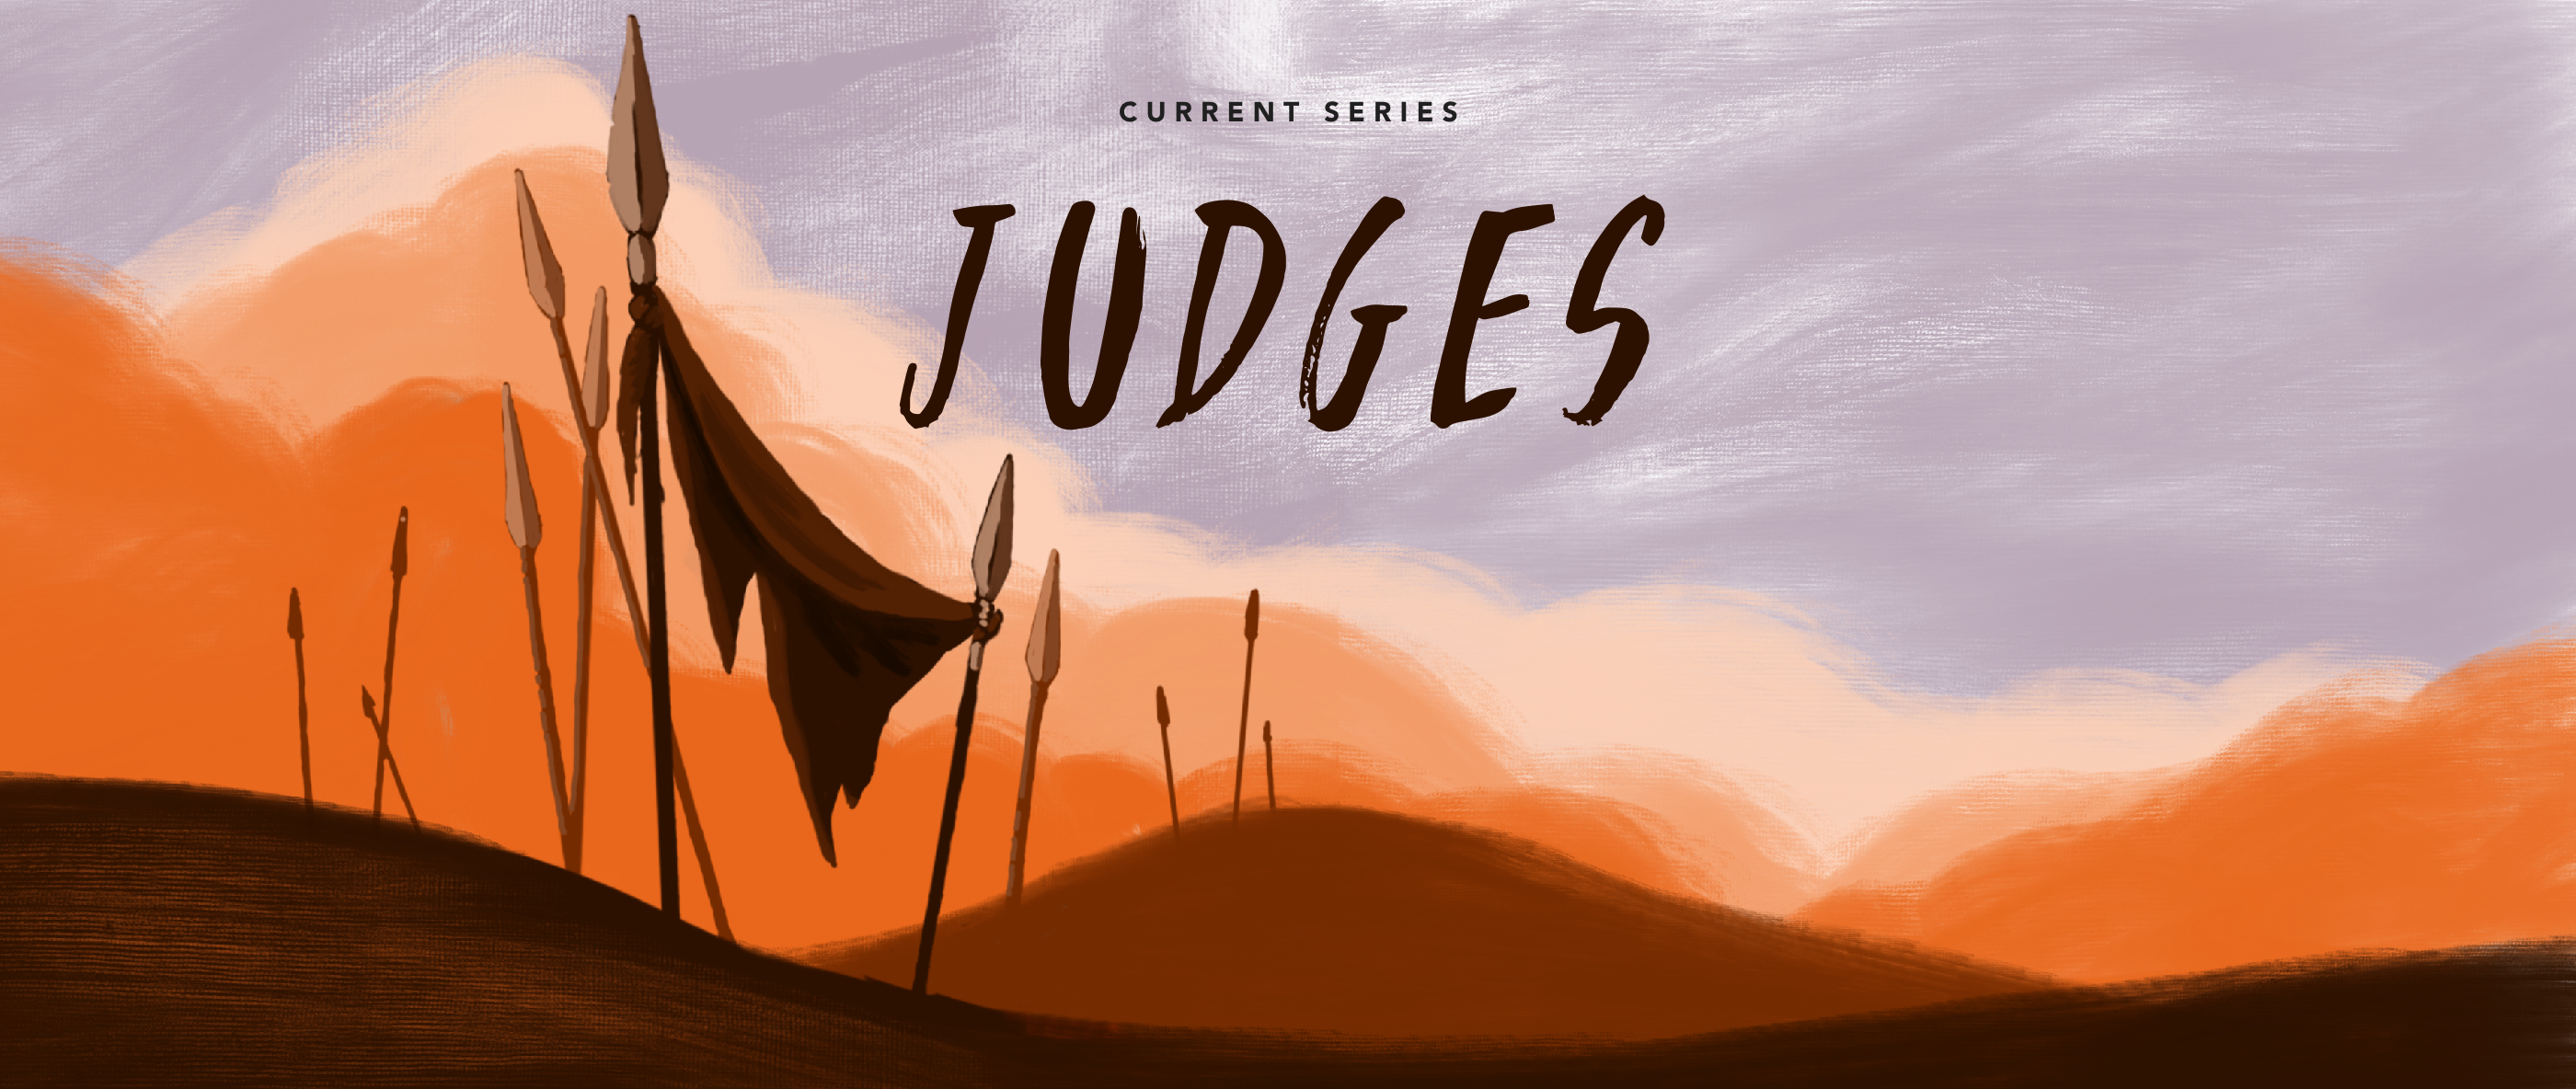 CurrentSeries_JUDGES